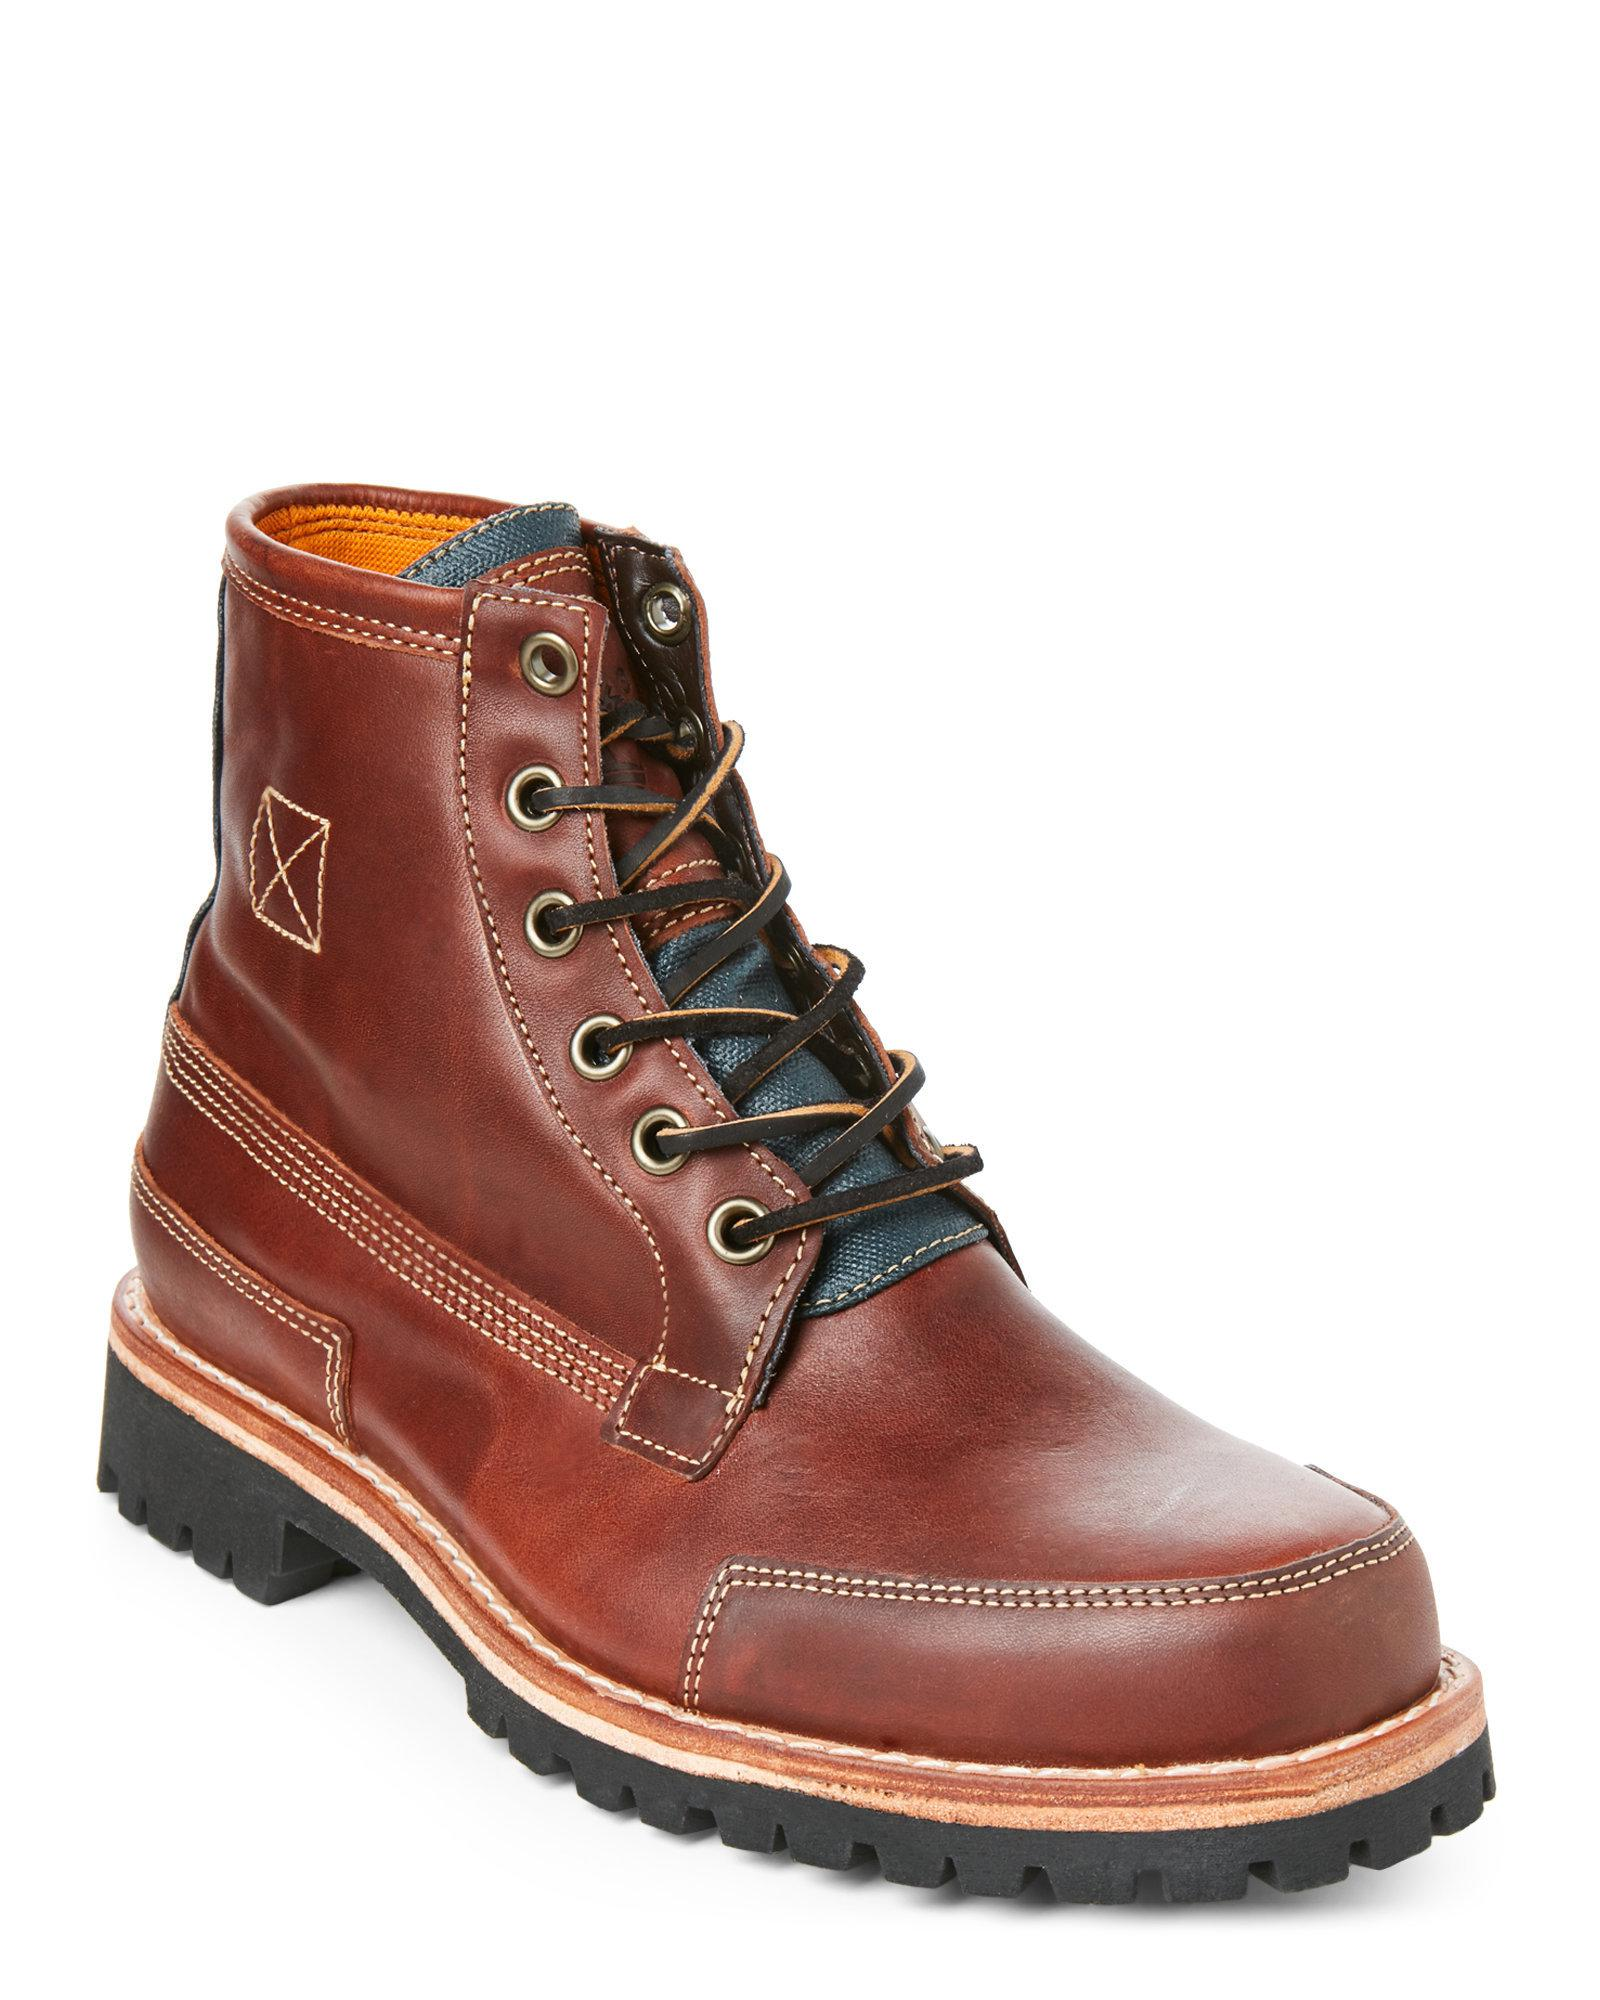 fc31f88be4d ... Lyst - Timberland Sundance Ltd Leather Boots in Brown for Me; Timberland  Mens Wheat Premium 6 Inch ...